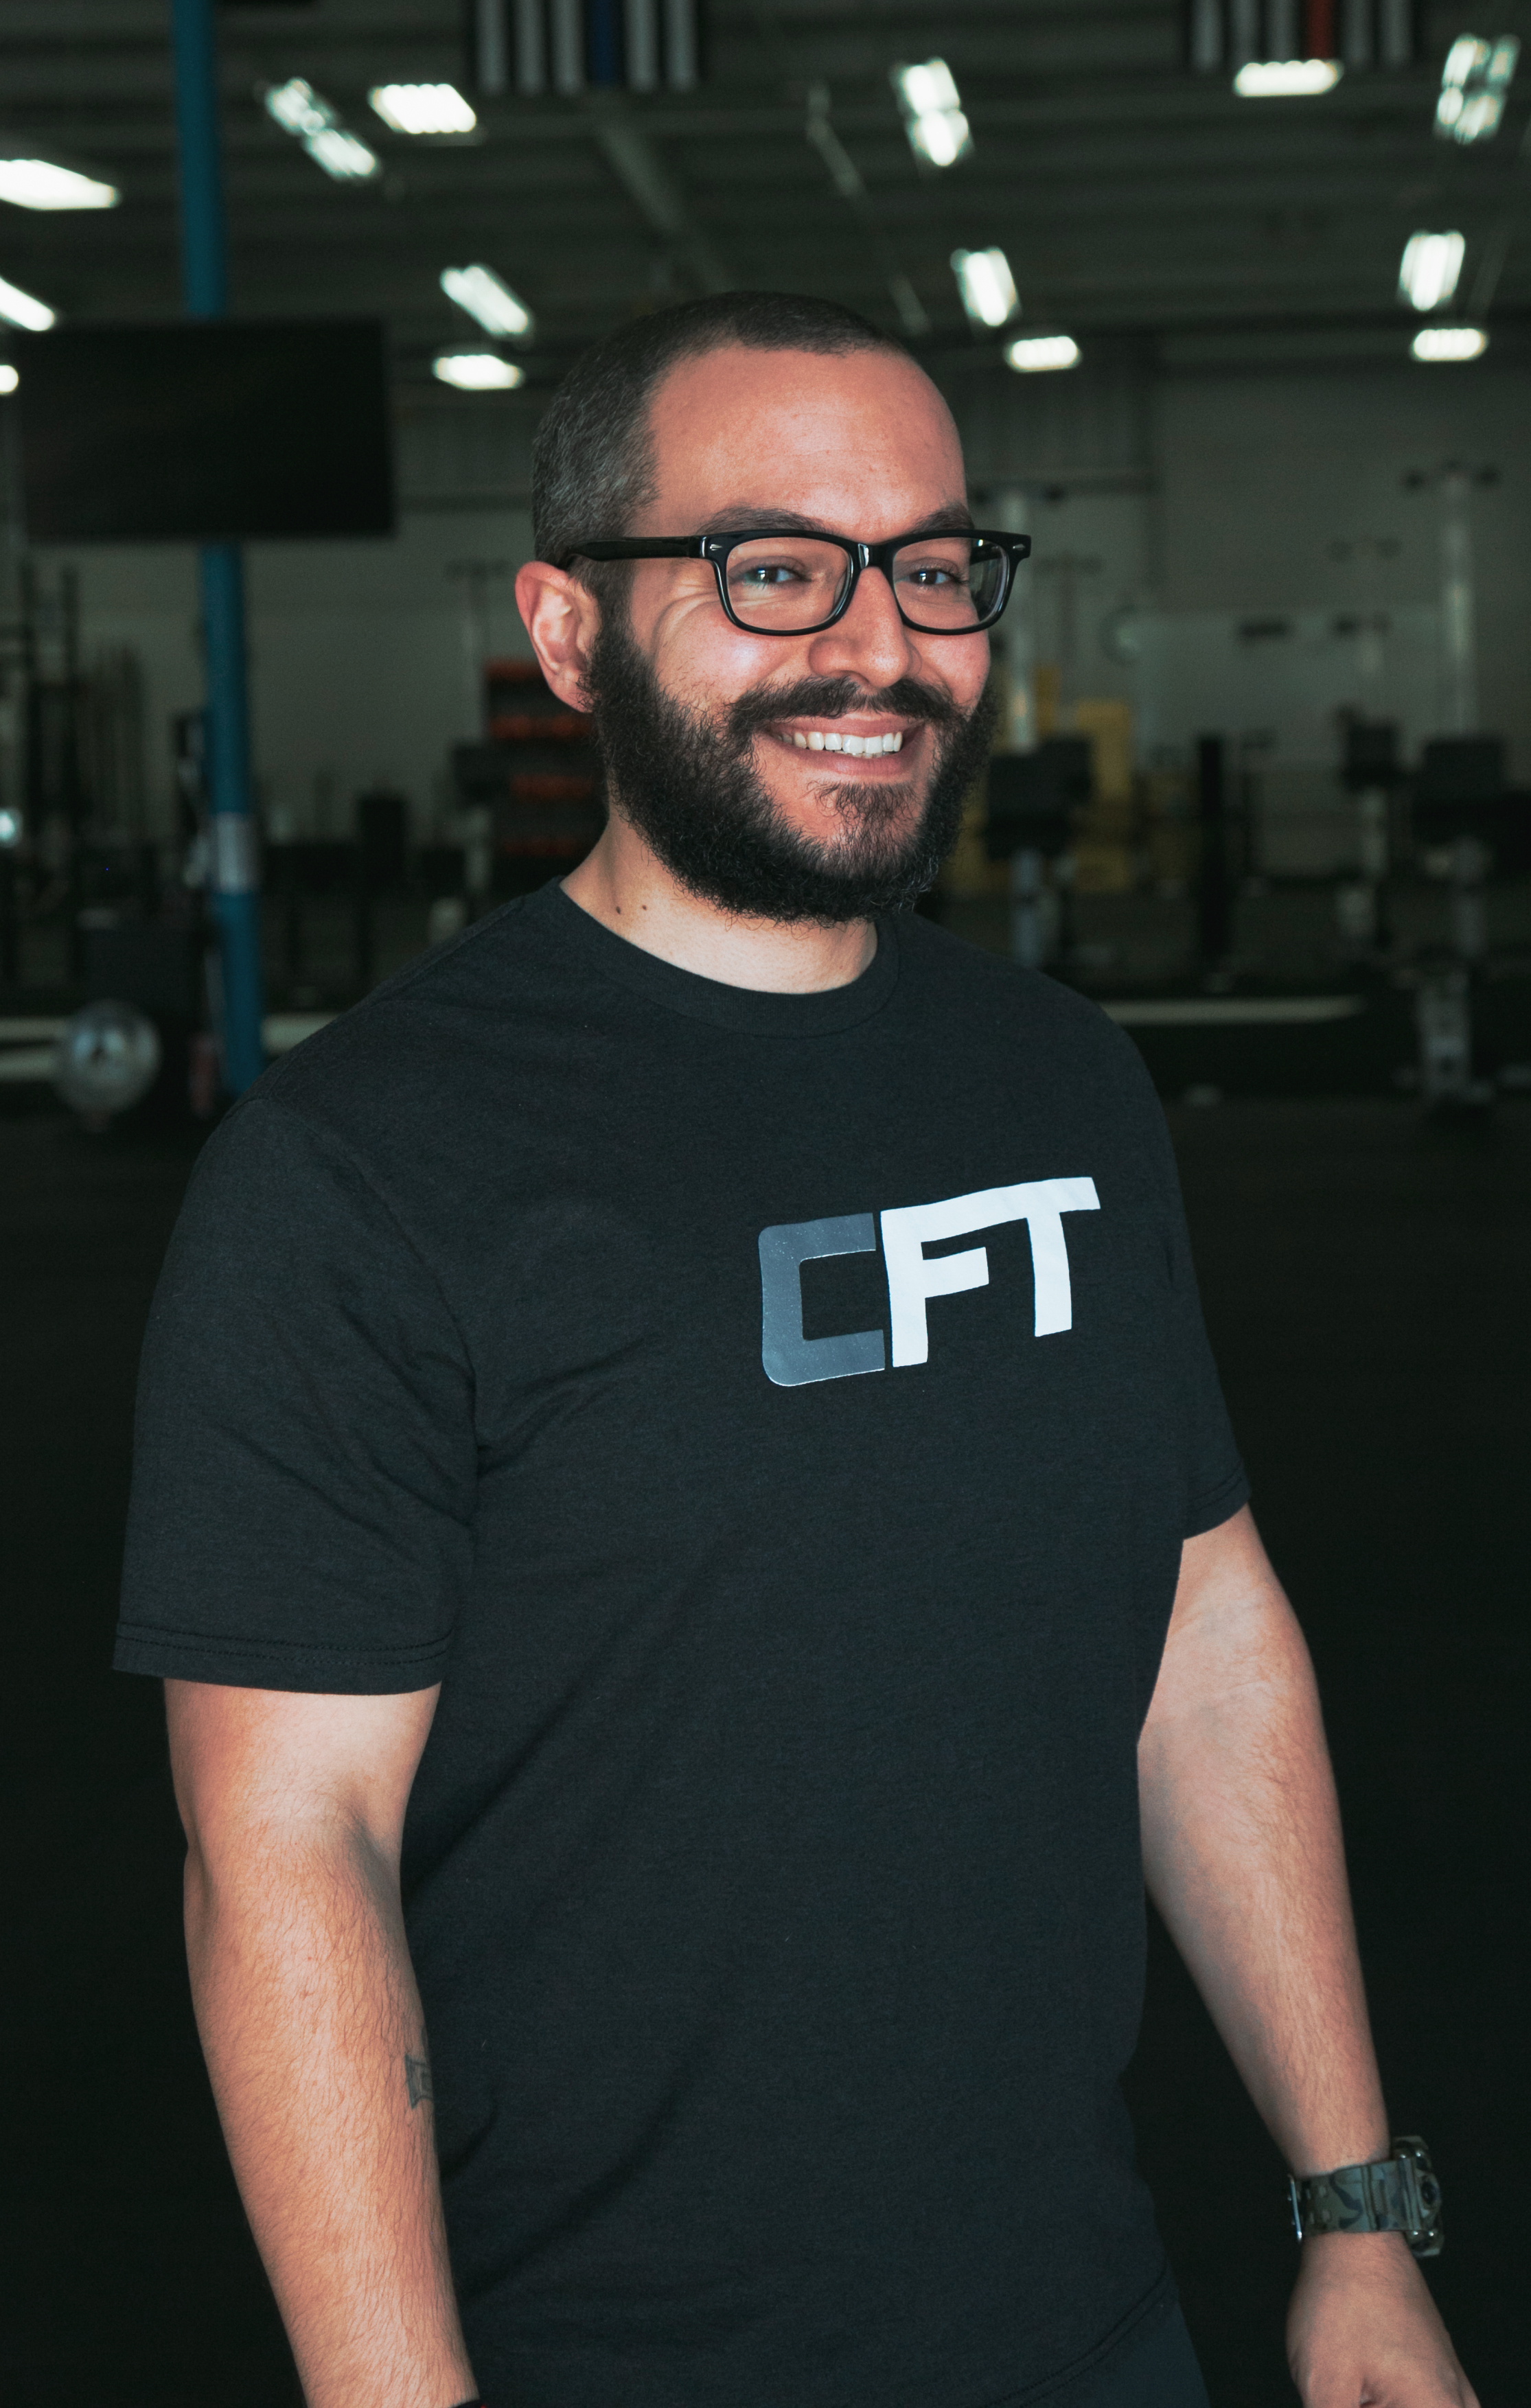 Hello! I'm Vinny Pelillo. - I started working at CFT Fitness to simply share my love and passion for fitness and to continue growing my career as a coach.I'm half Italian and half Brazilian and I wrestled for 20 years!If you are looking for a place to not only have fun through fitness but also be treated like family, then you have already found your new home!Book a session with Vinny ➝